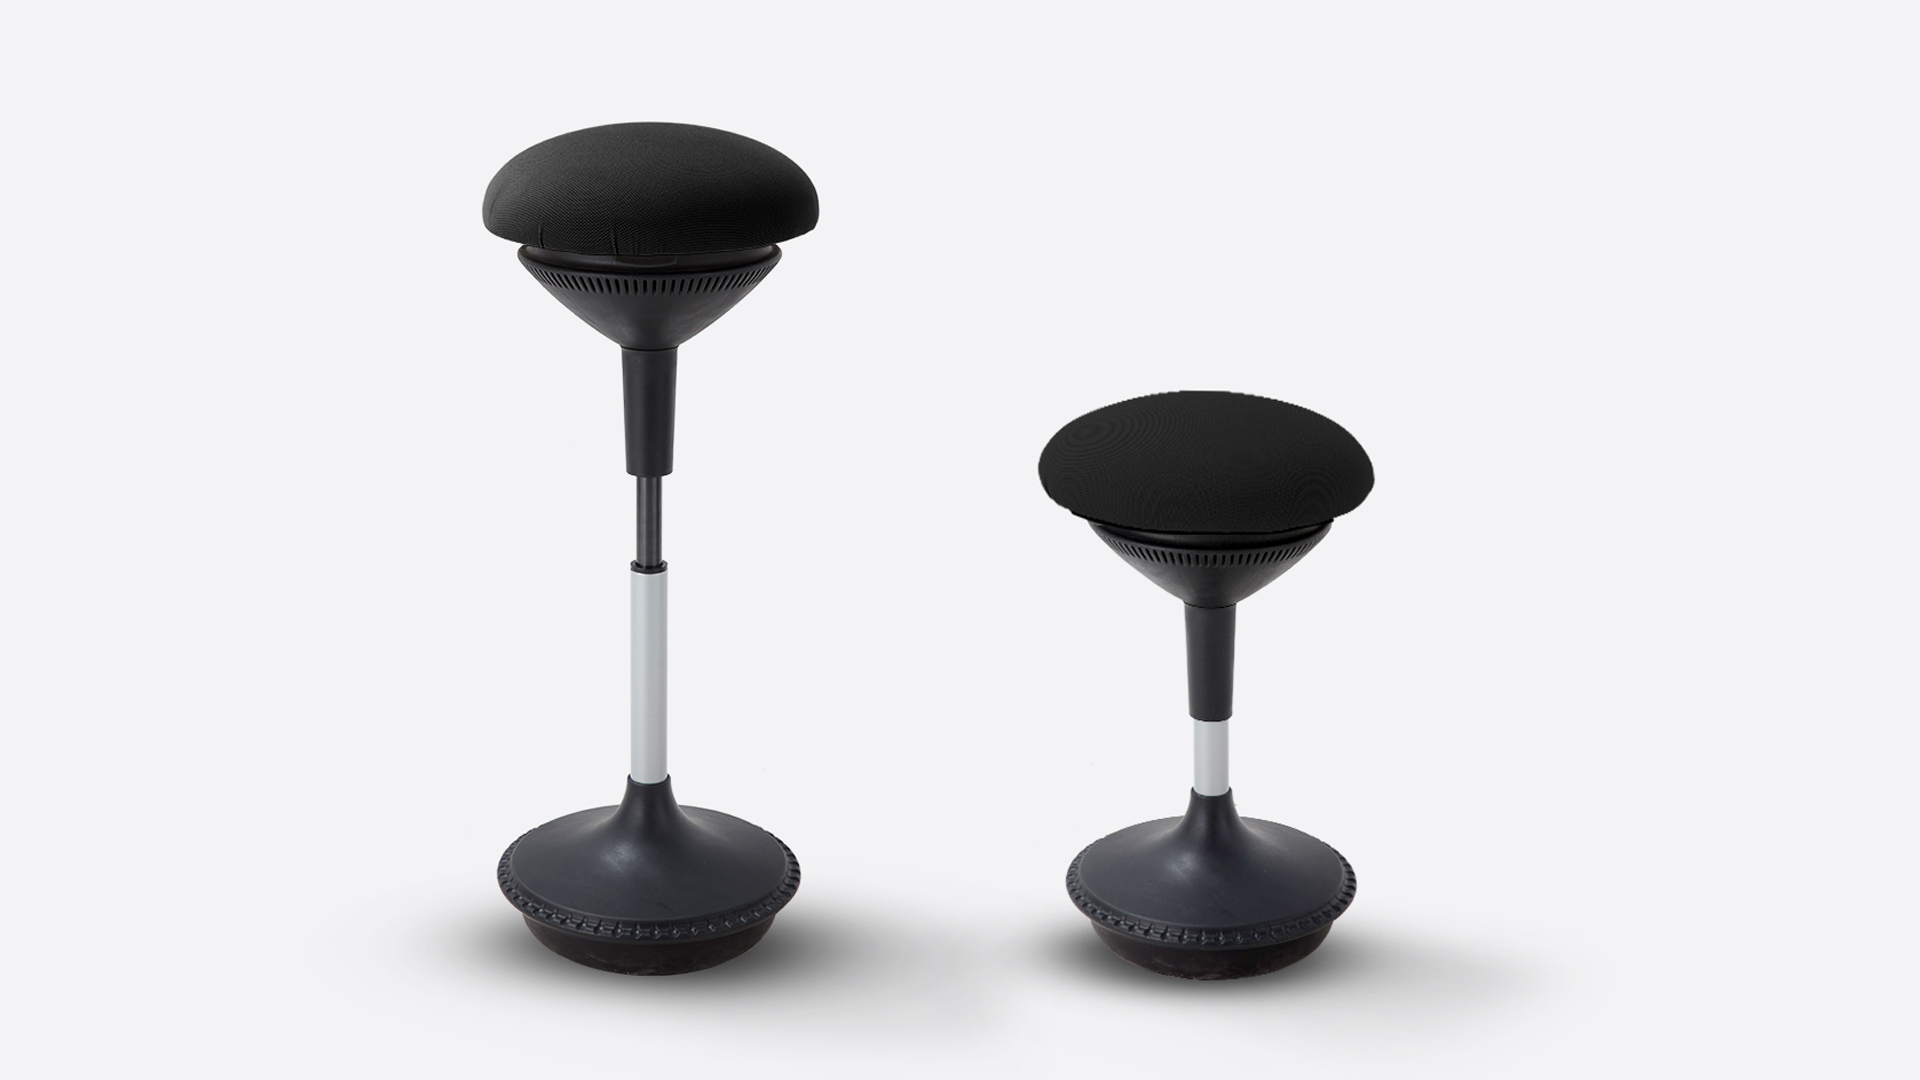 Office Chair Stool, these are the reasons why we should choose Autonomous